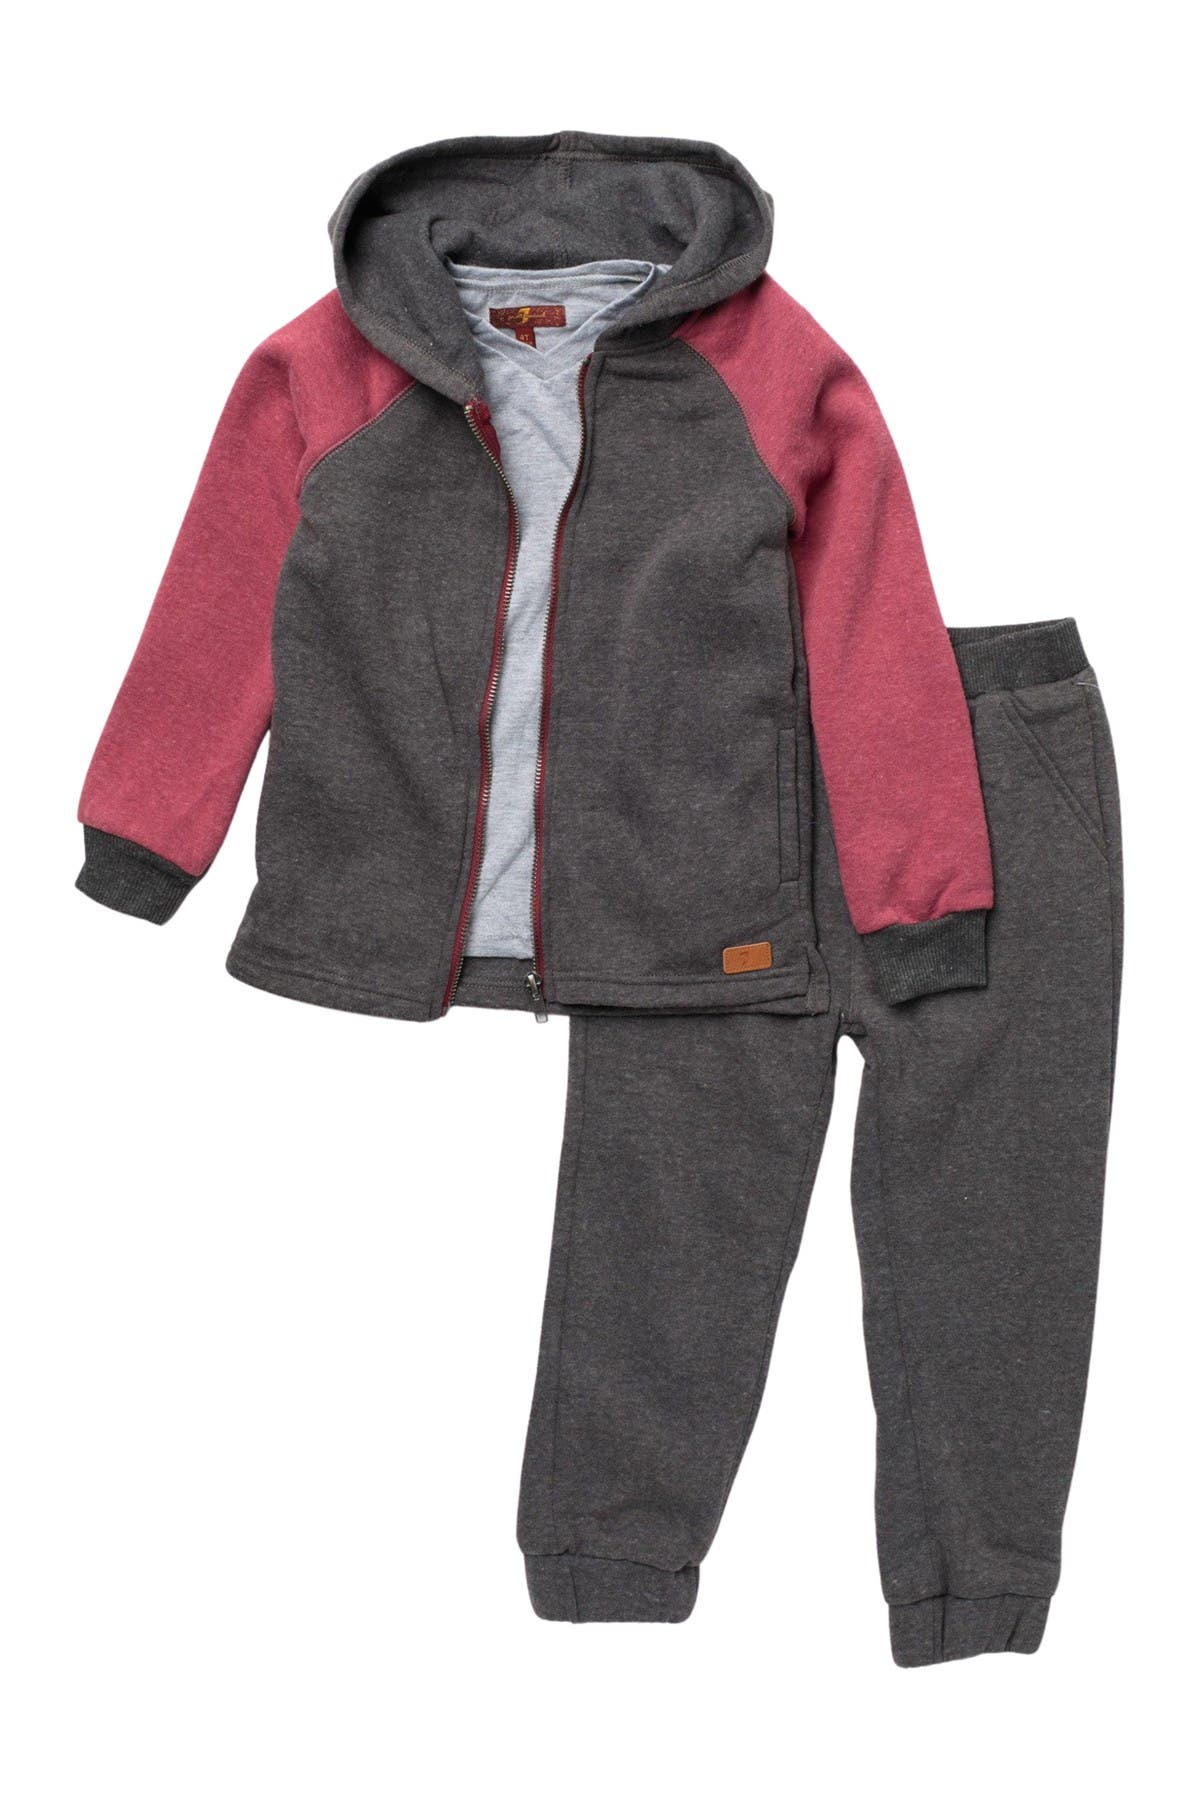 Image of 7 For All Mankind Shirt, Jacket, & Pants 3-Piece Set